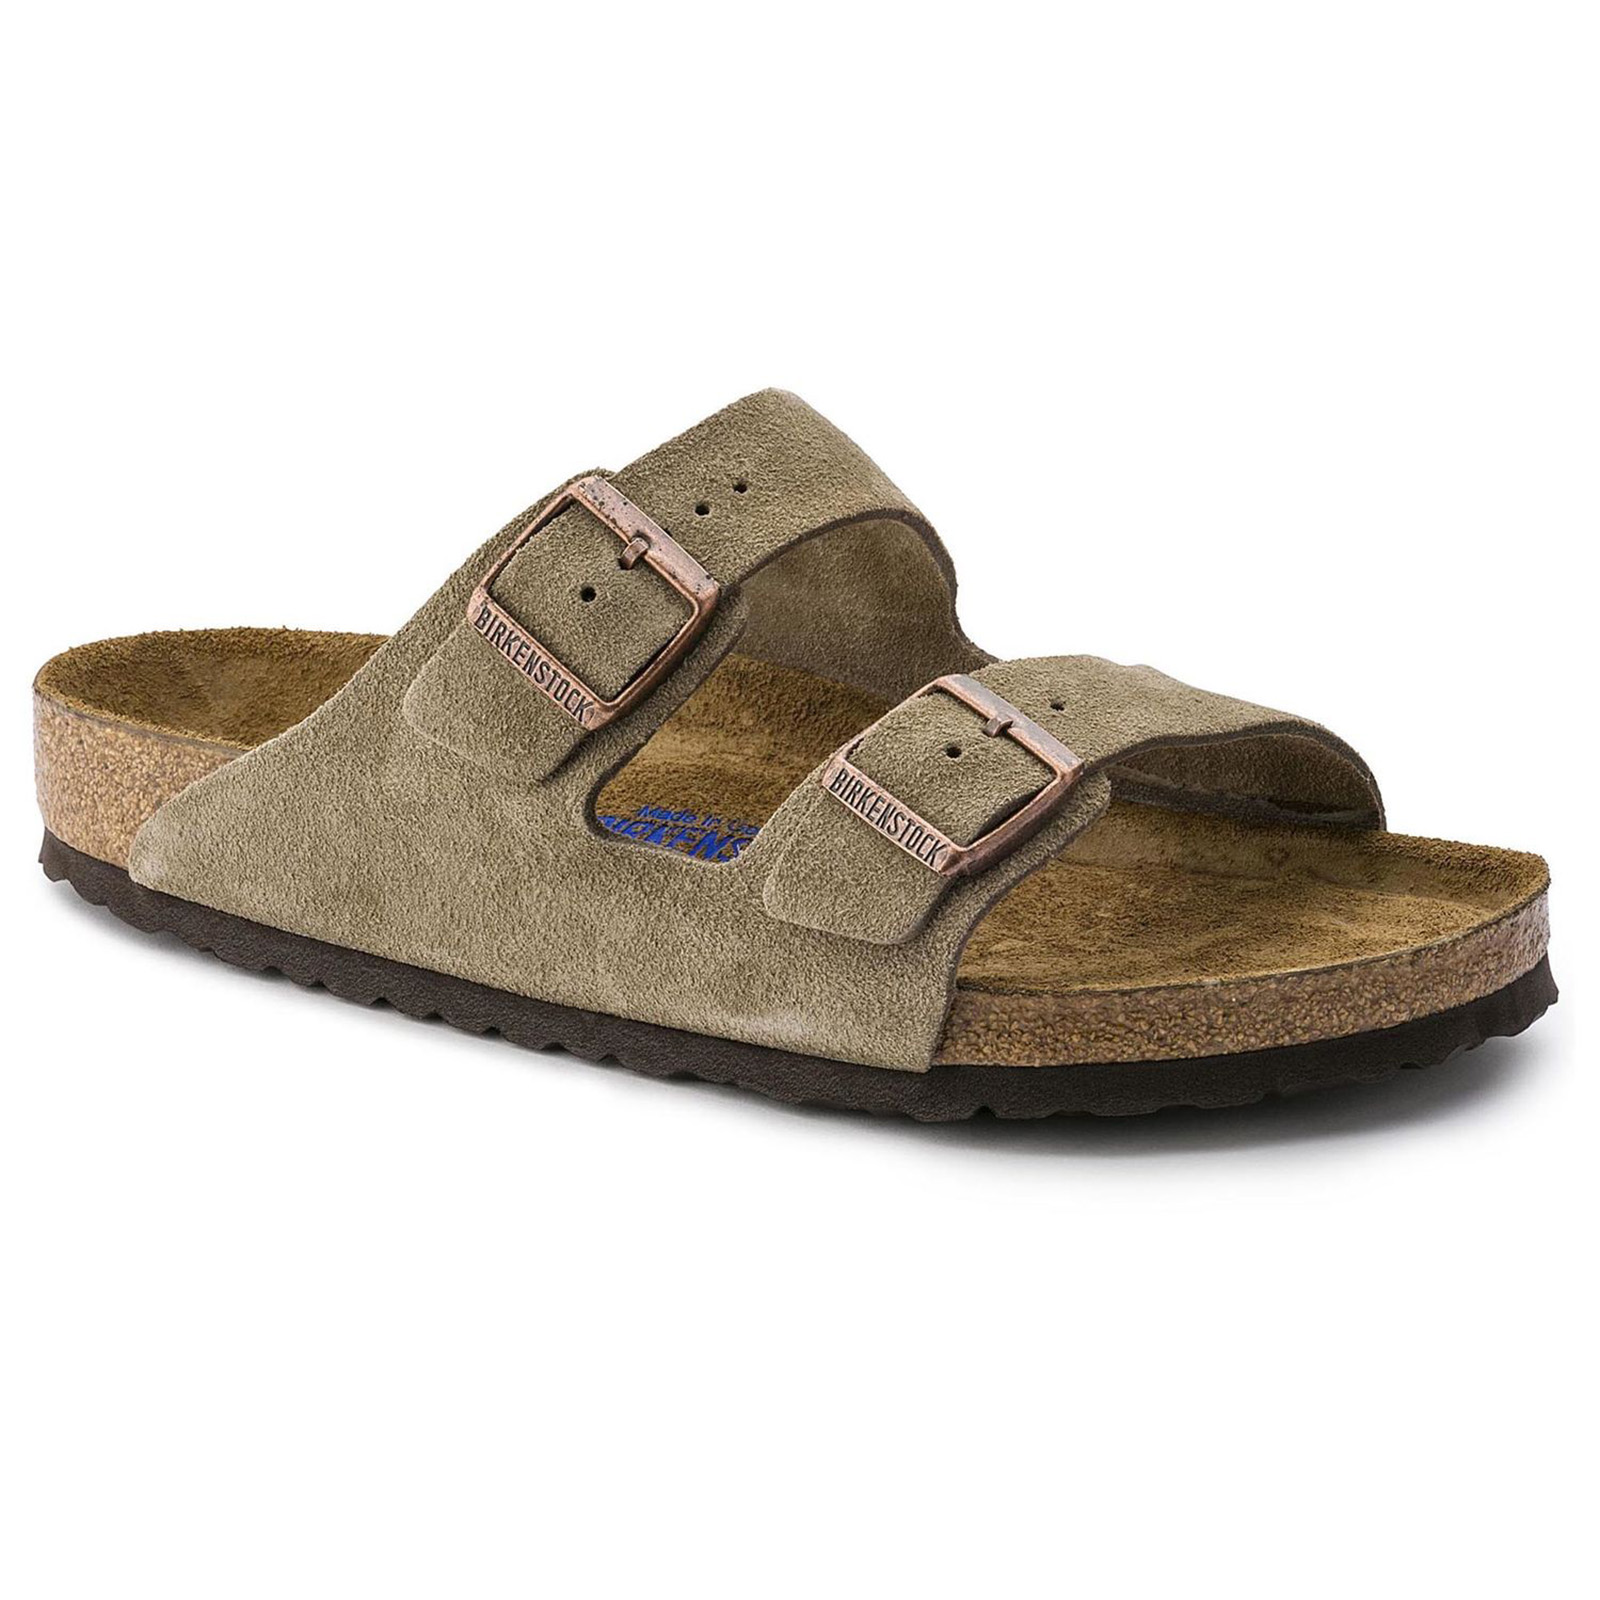 623c48055d Details about Birkenstock Arizona Soft Footbed Taupe Beige - Fit Narrow -  Sandals unisex